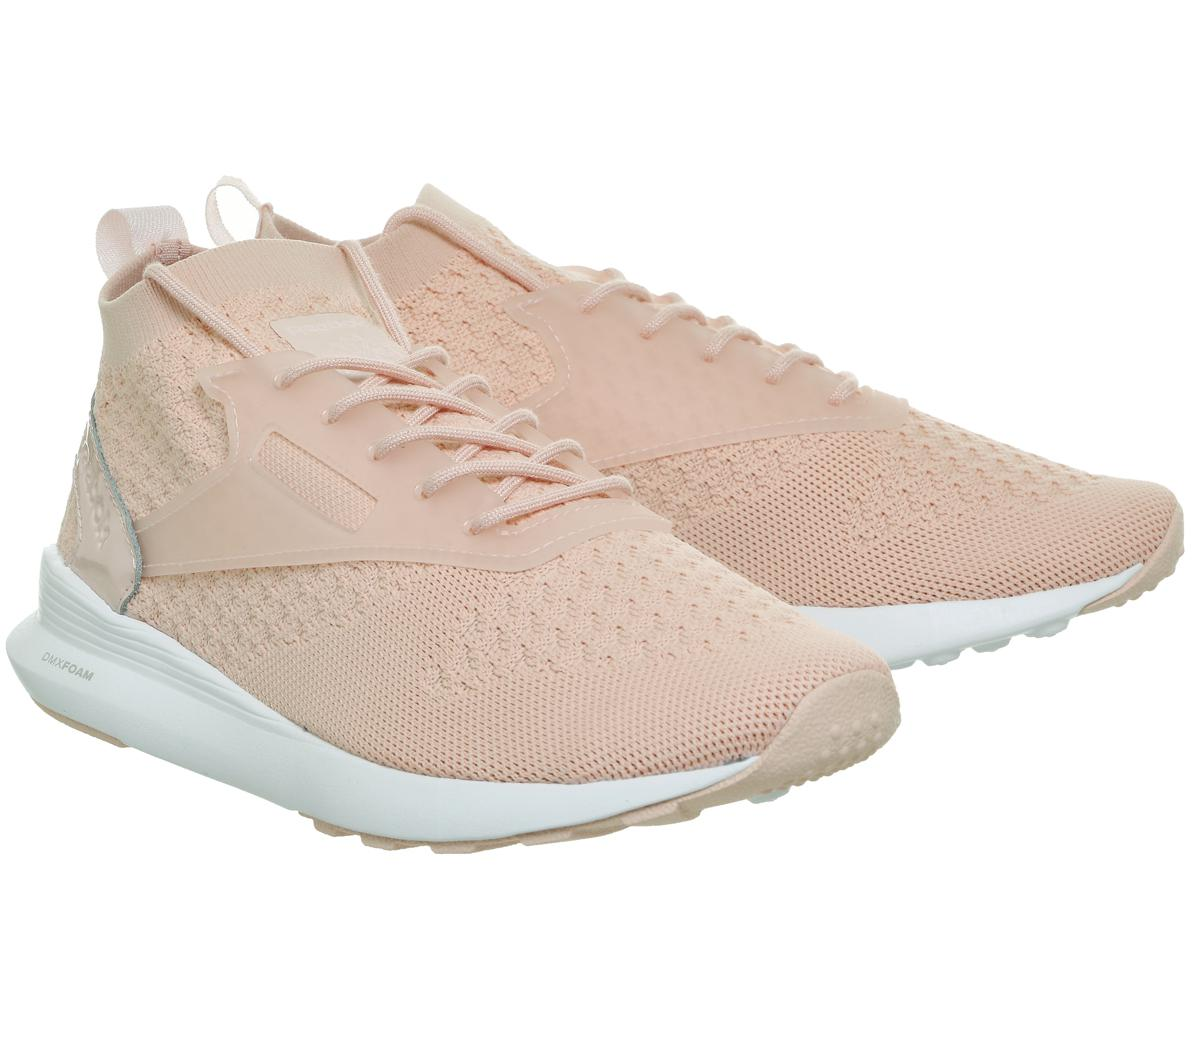 Reebok Zoku Runners in Pink - Lyst be3f01eb6